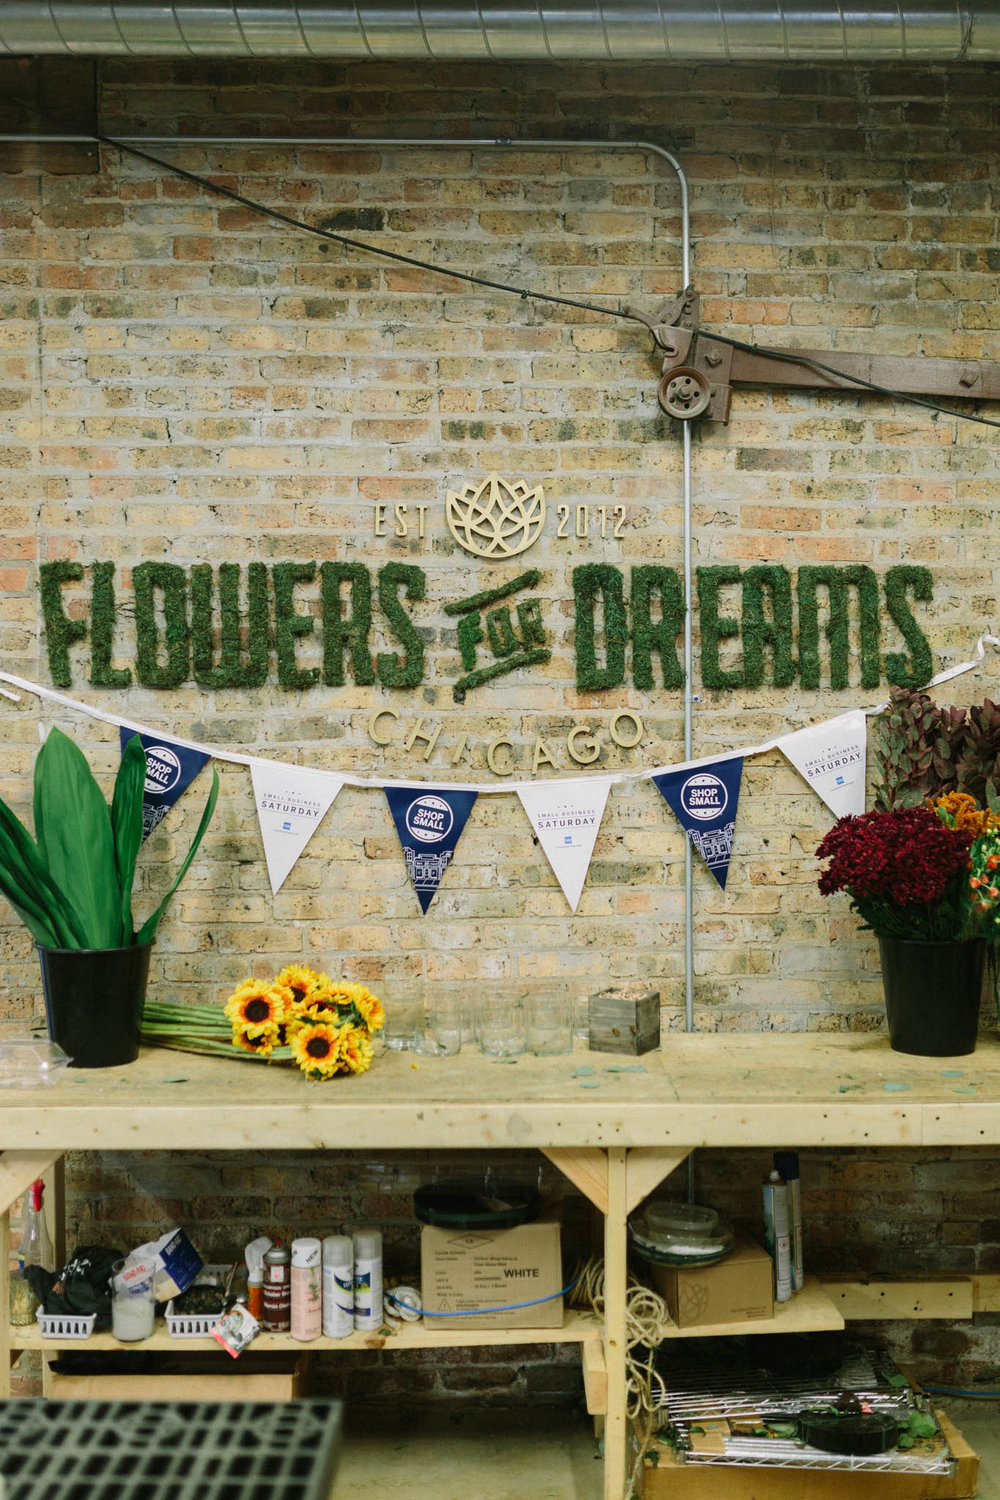 Shop Small: Flowers for Dreams